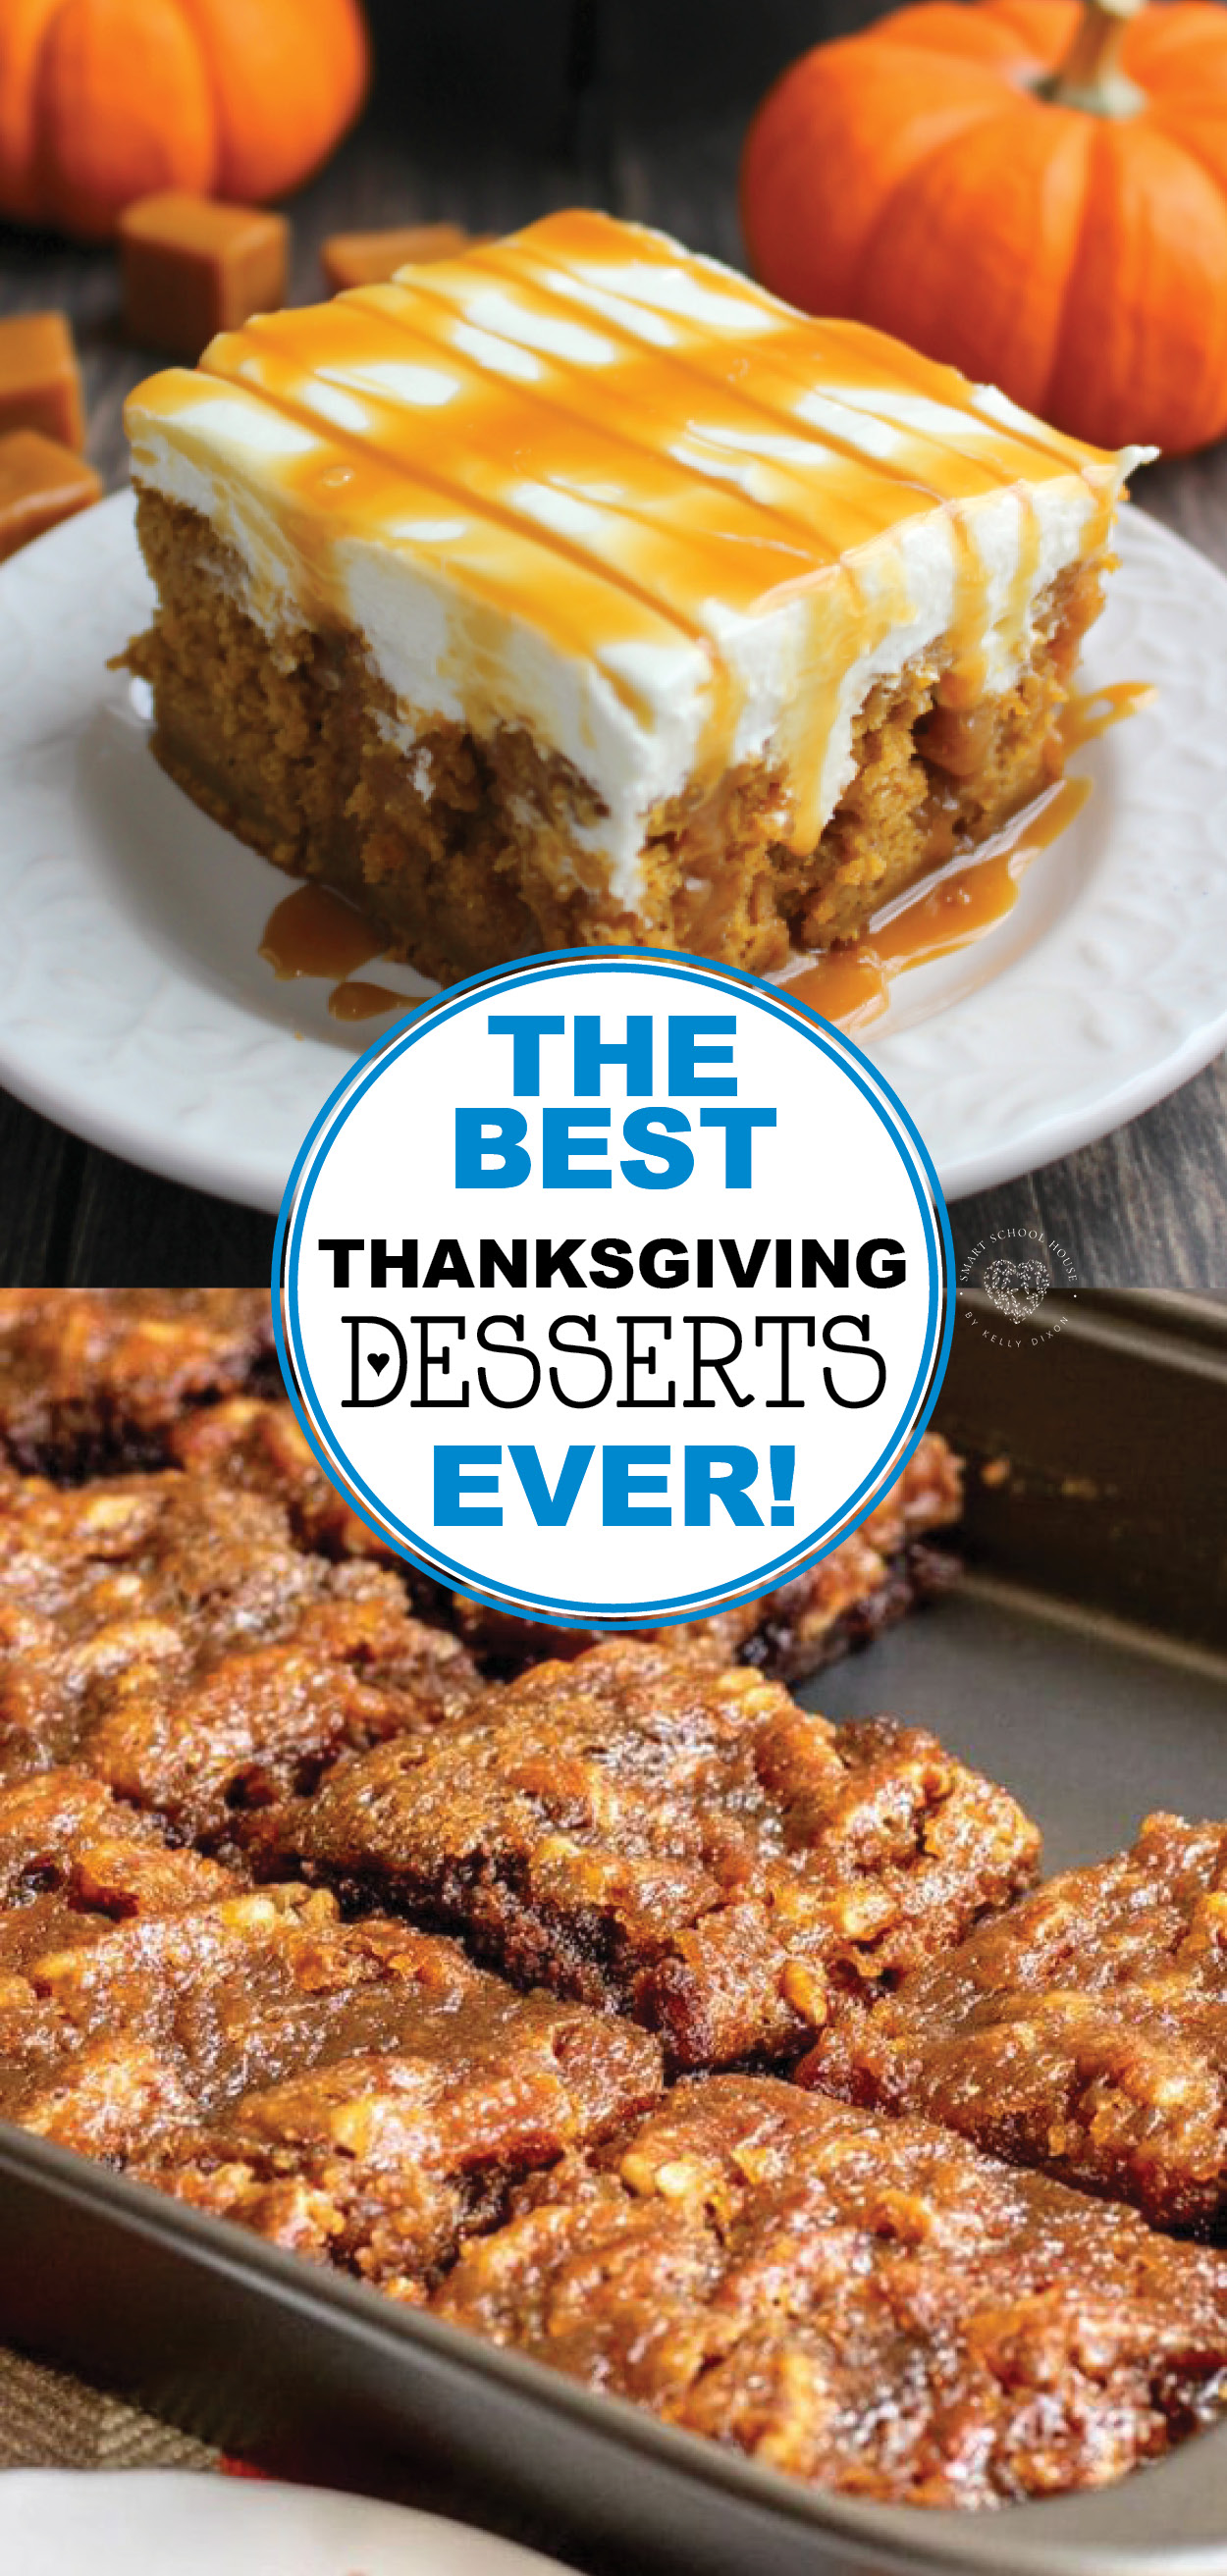 You won't believe how delicious these Thanksgiving recipes taste. This Thanksgiving you have to try one of these recipes. These are the best Thanksgiving desserts ever! Try a new dessert for your Thanksgiving dinner this year. These easy and delicious recipes are sure to make your Thanksgiving dinner memorable. Try one of these delicious dessert recipes. You will be sure to find the perfect dessert for your family meal this Thanksgiving. #Thanksgiving #recipe #dessert #chocolate #homemade